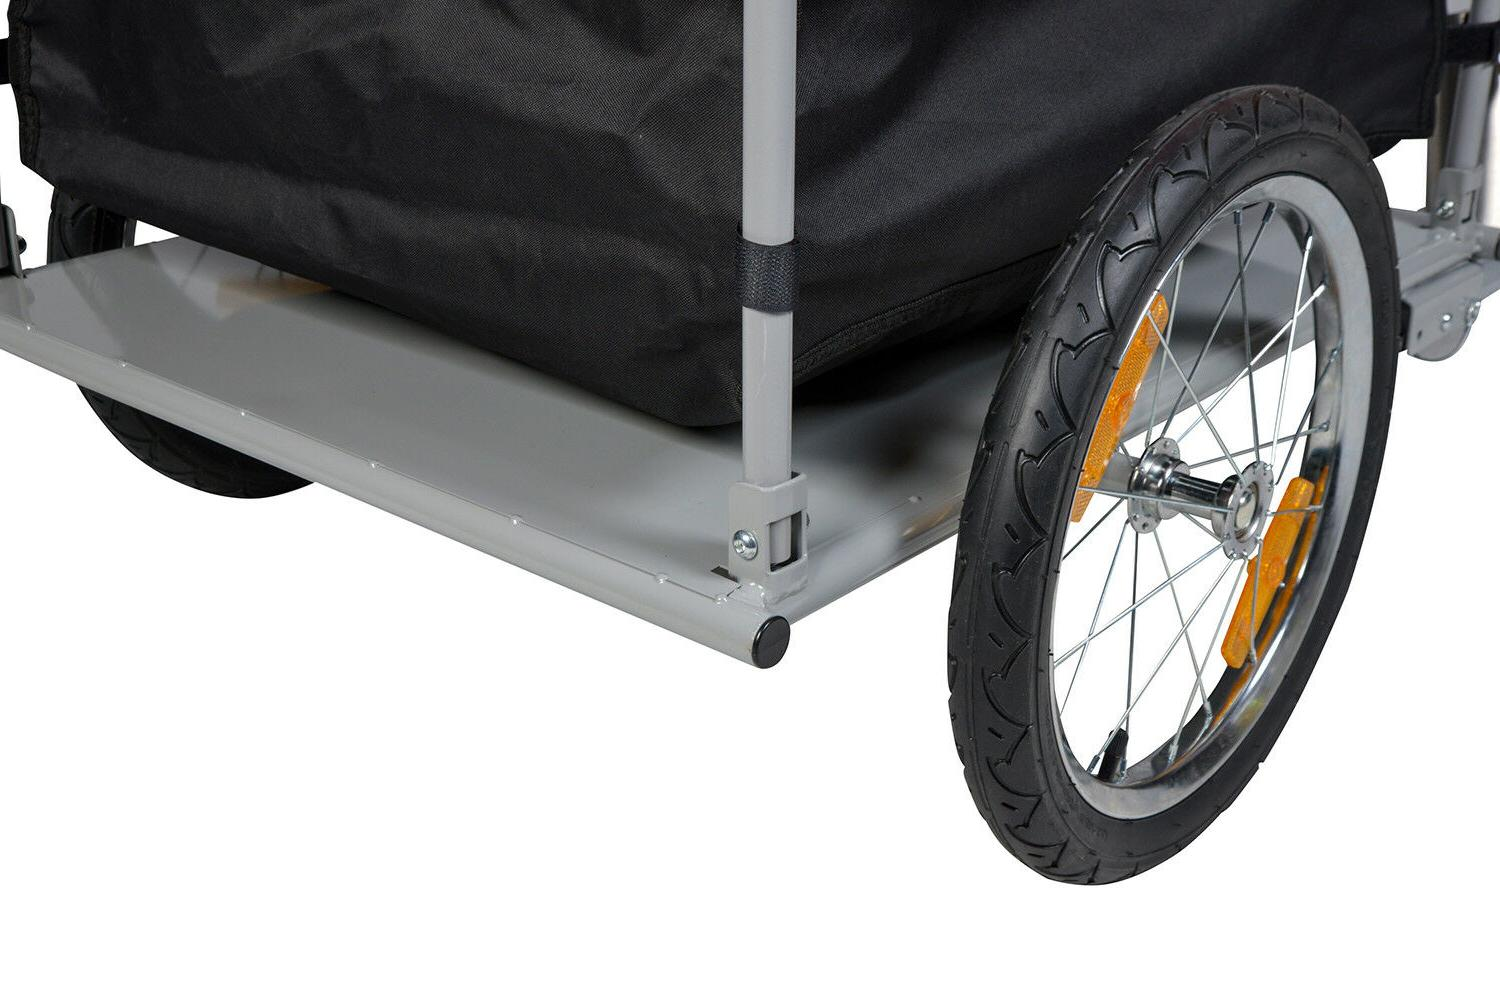 Bike Cargo Trailer Carrier Cart Luggage Transport Wagon